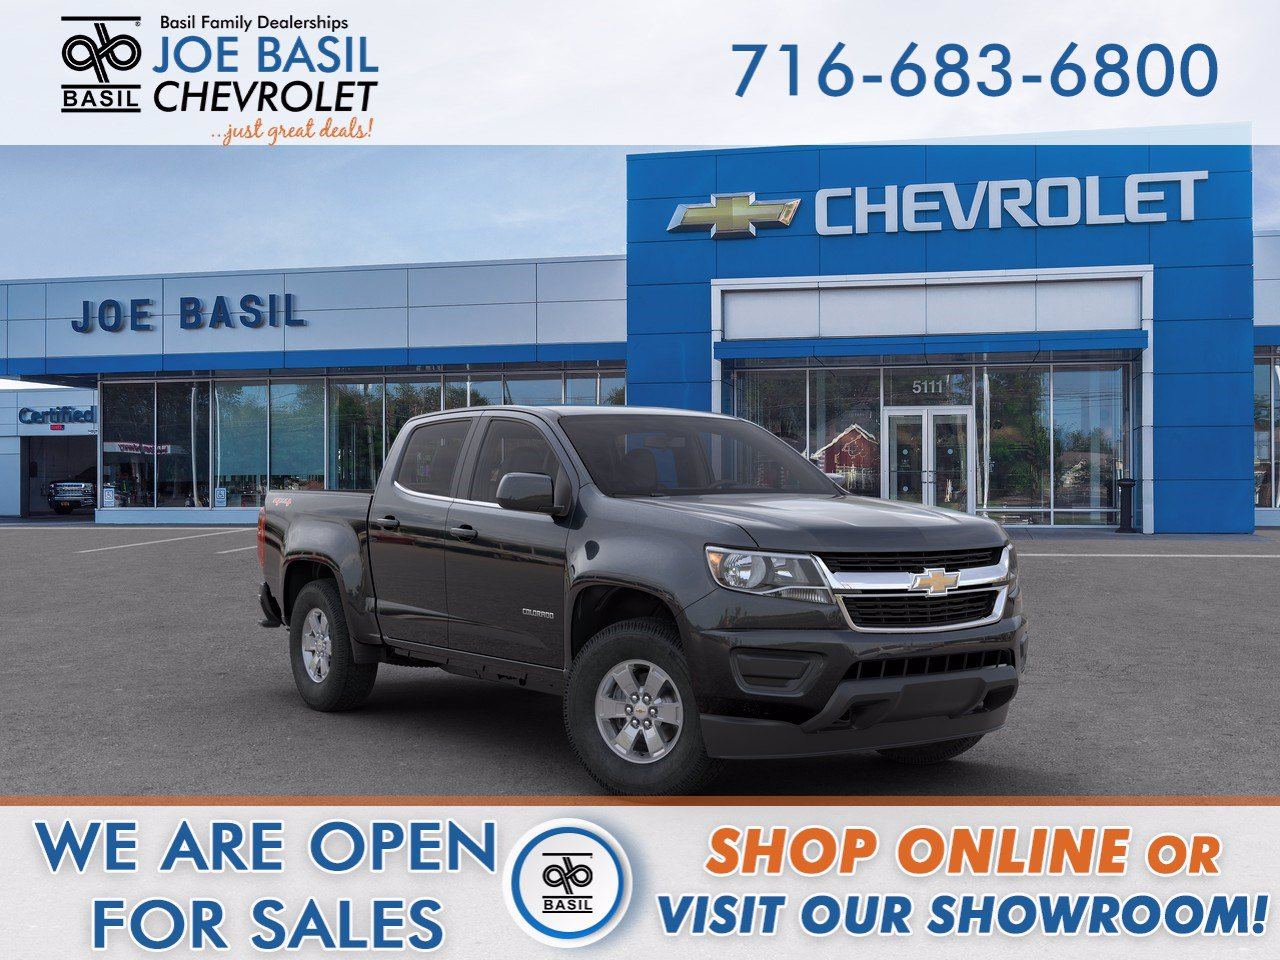 Basil Resale Sheridan >> New 2020 Chevrolet Colorado 4WD Work Truck Crew Cab Pickup in Williamsville #CCR1201 | Basil ...